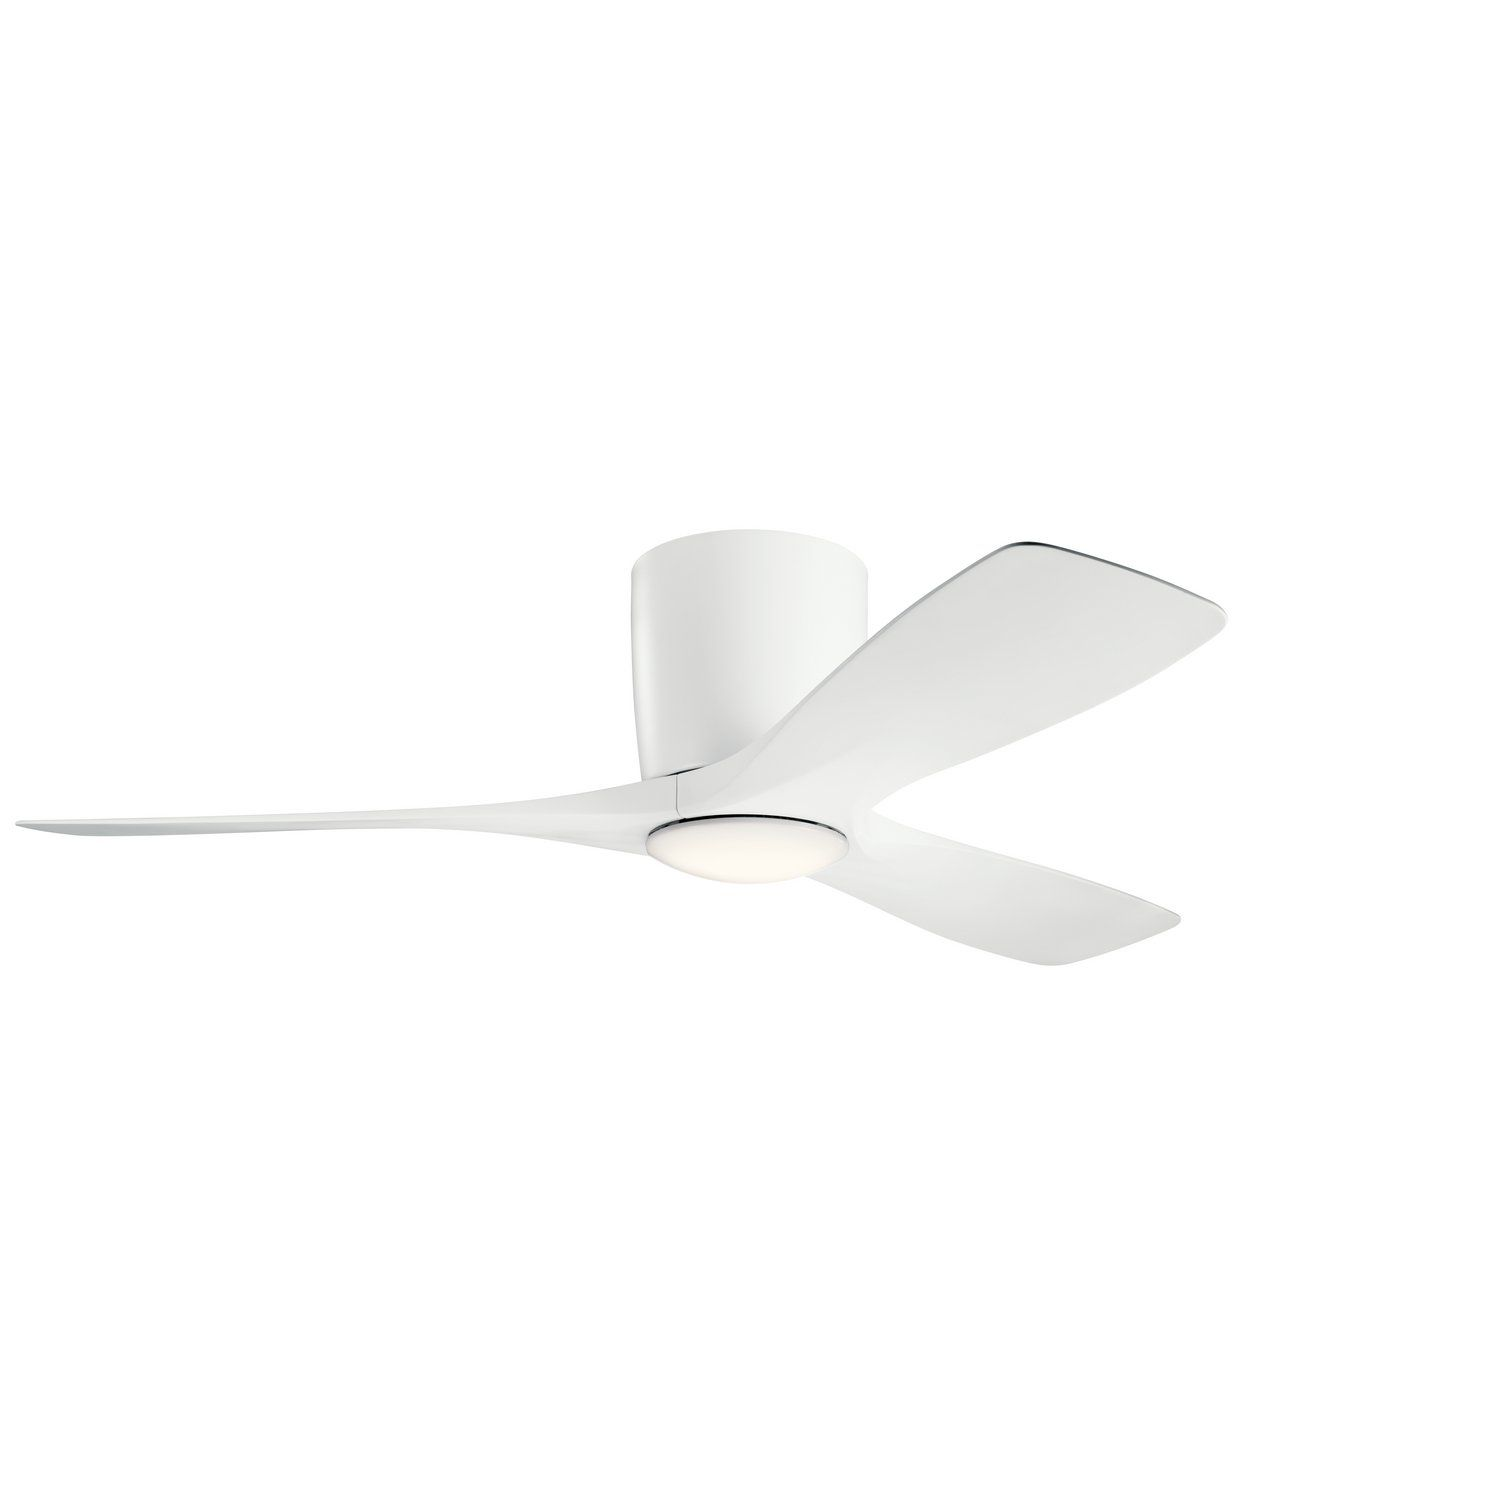 48 Ceiling Fan From The Volos Collection In Matte White Finish In 2021 Flush Mount Ceiling Fan Led Ceiling Fan White Ceiling Fan